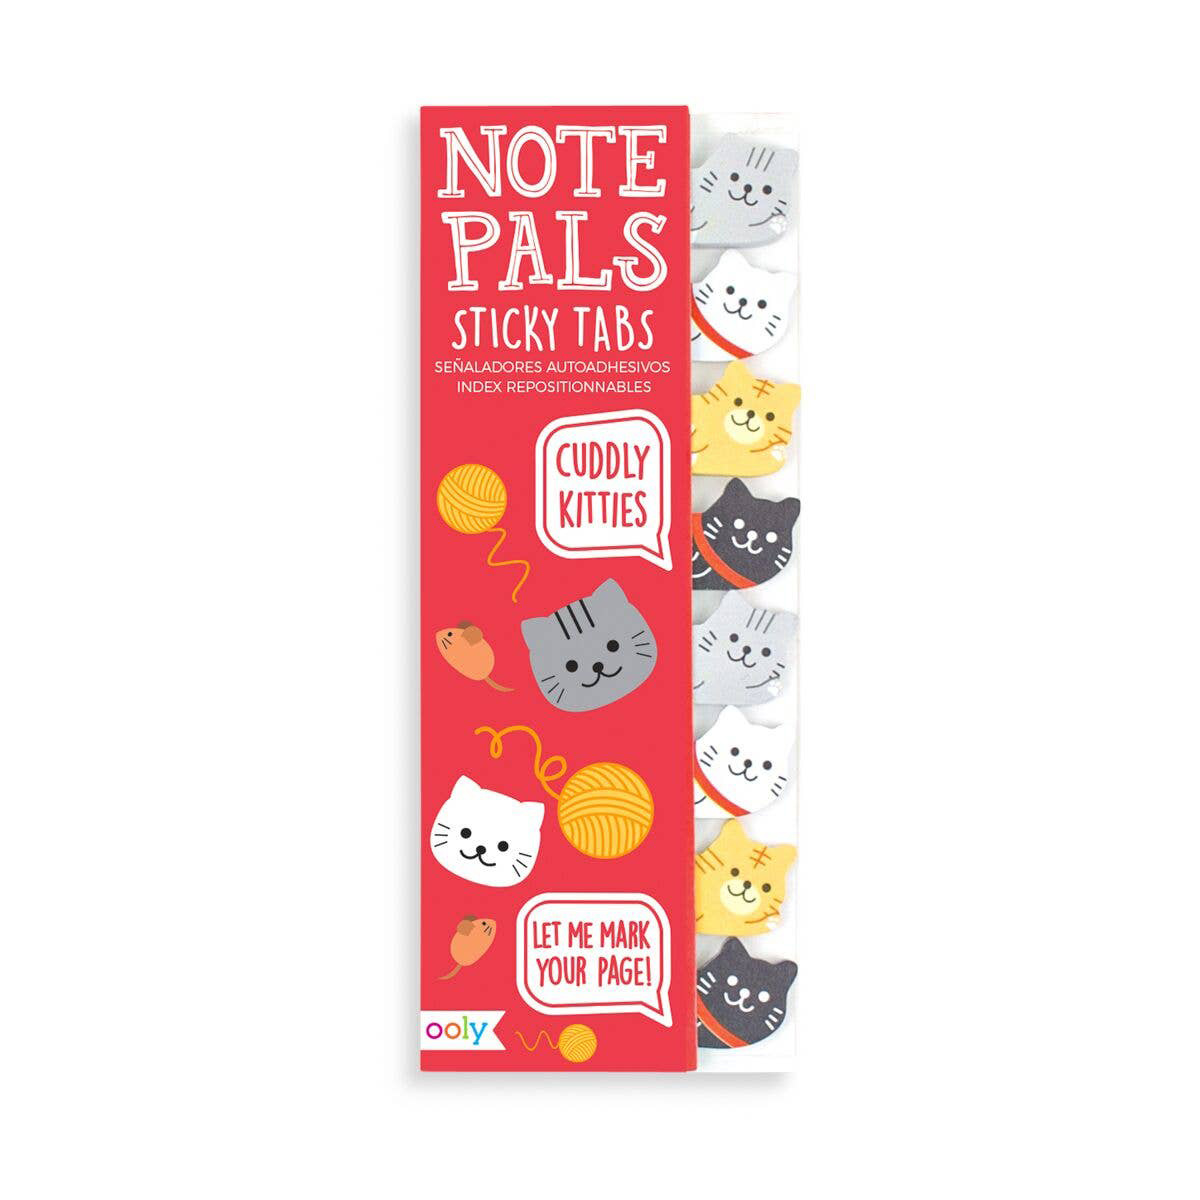 OOLY - OO Cuddly Kitties Note Pals Sticky Note Tabs